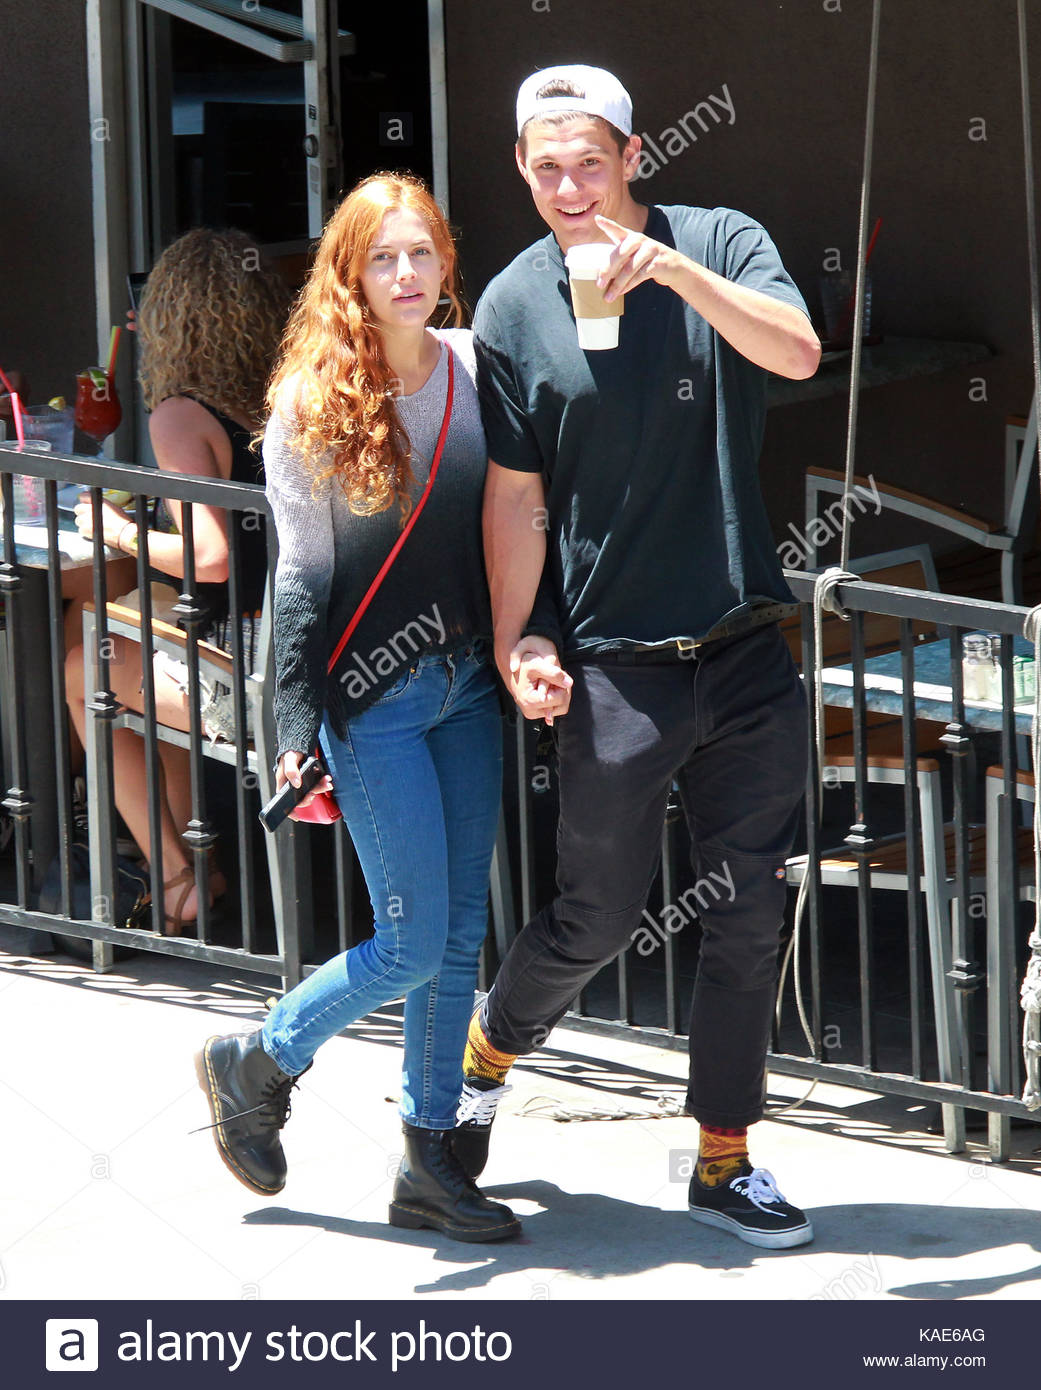 Aug 2014. The granddaughter of Elvis Presley, Riley Keough is engaged to her longtime boyfriend, Ben Smith-Peterson.